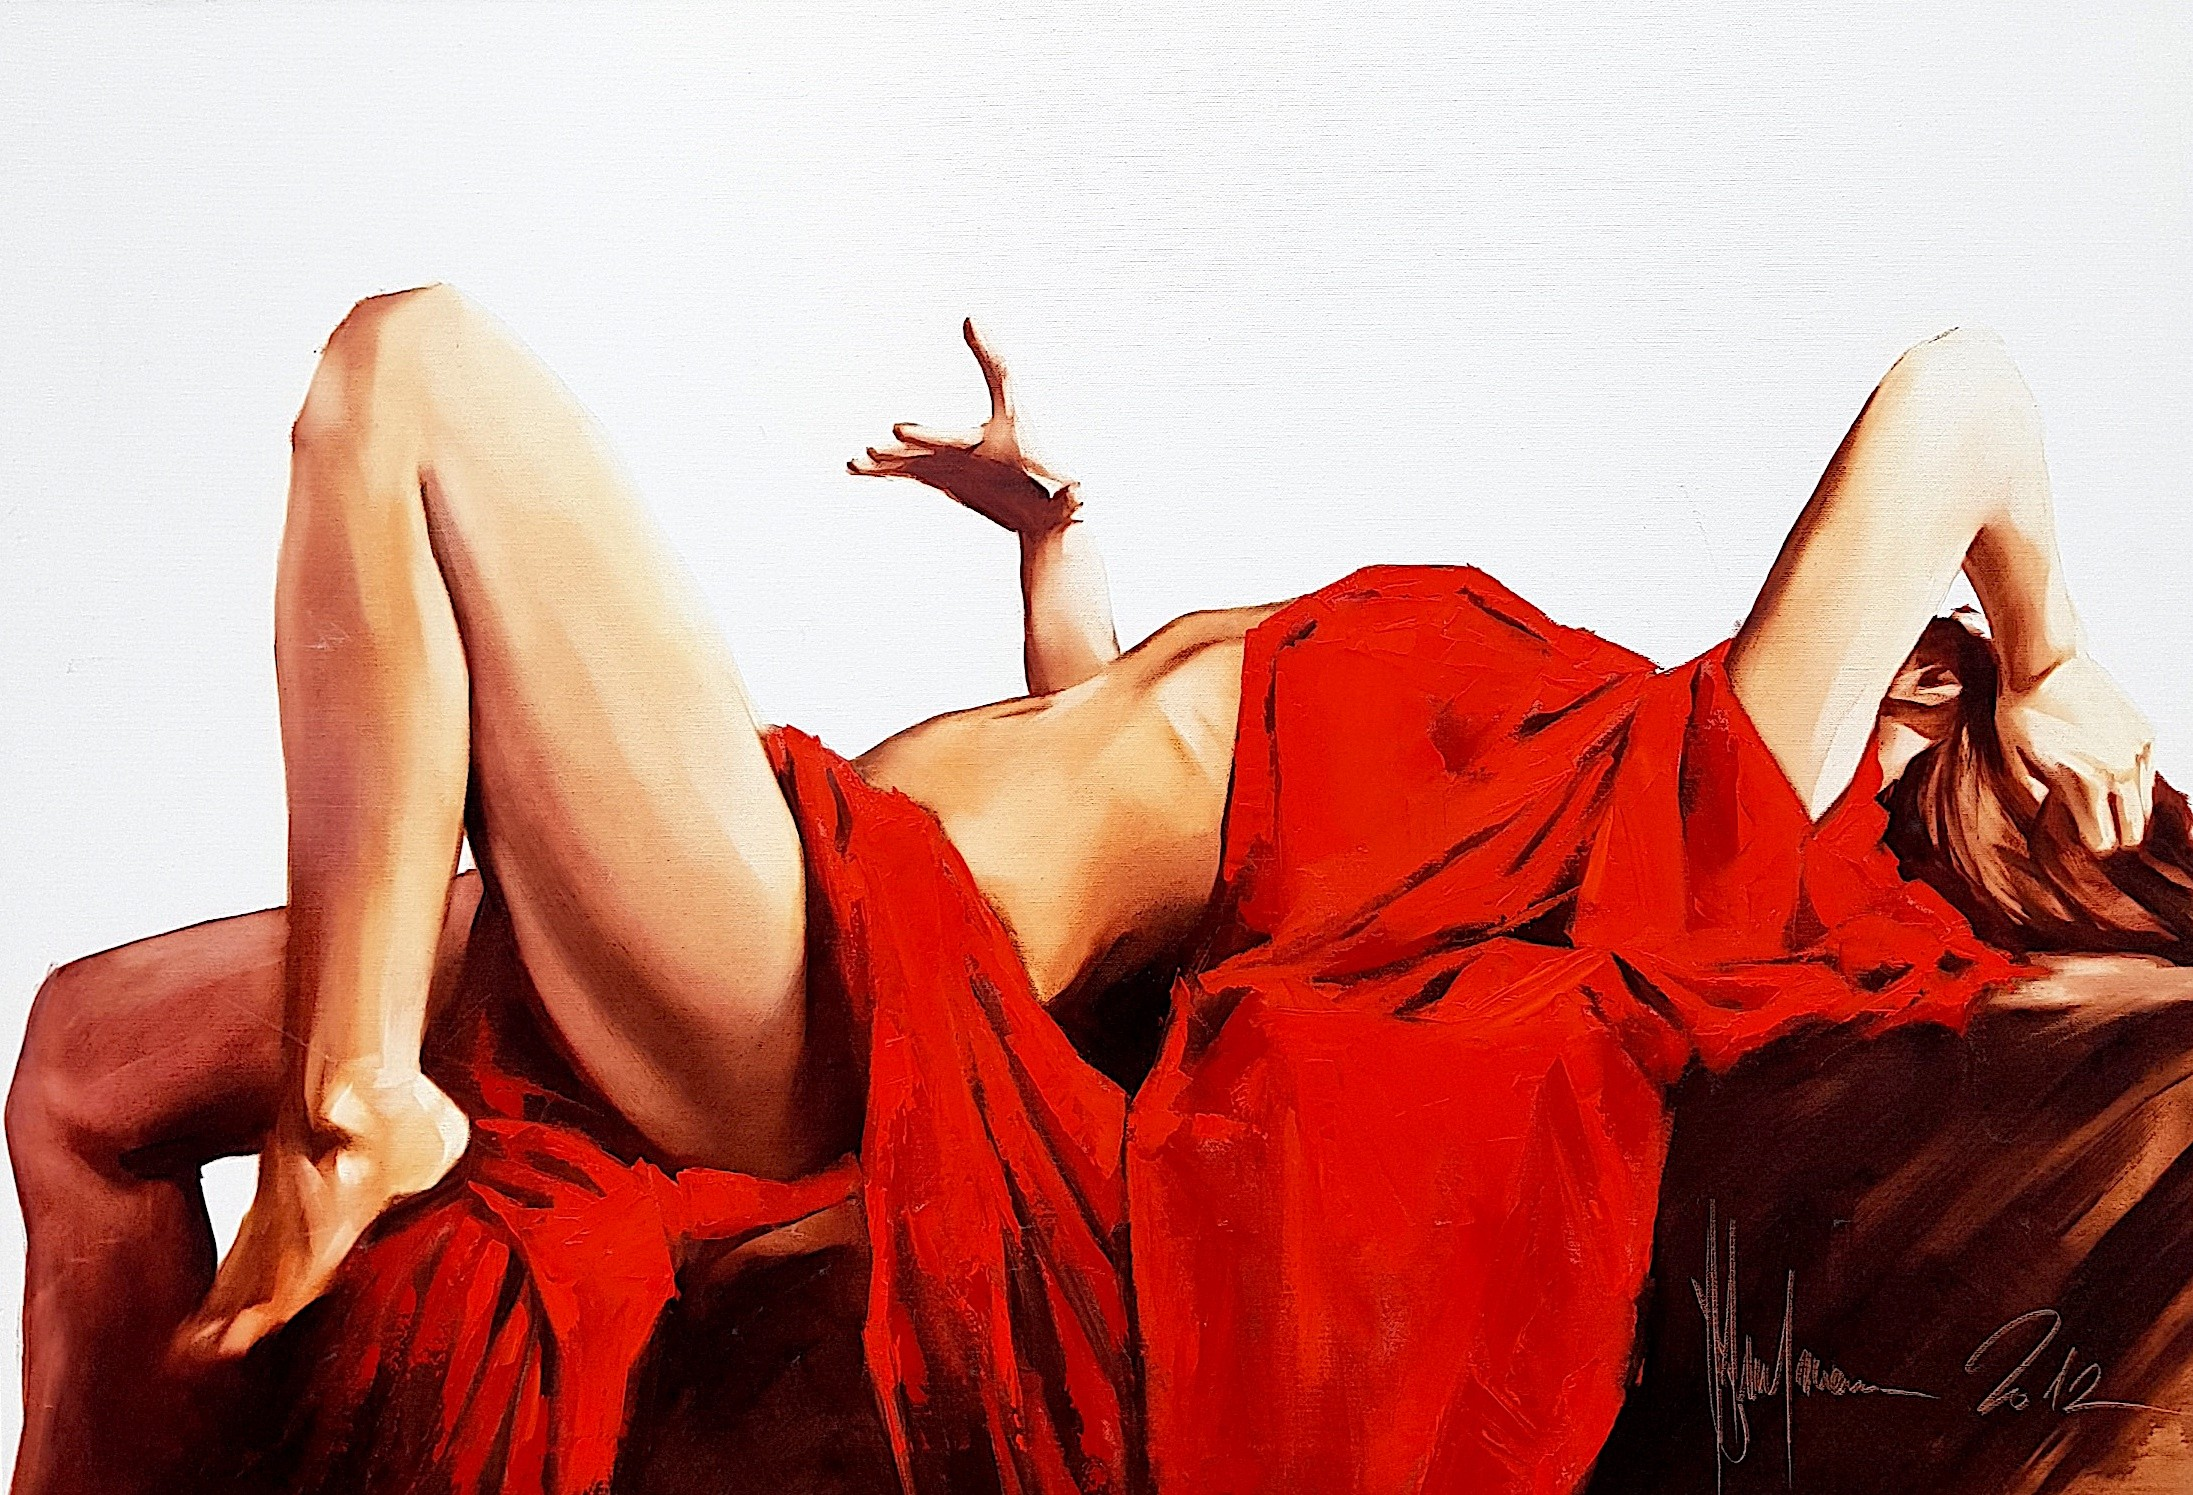 Natalie in Red – in stock (2012) 70 x 100 x 3 cm / 27.55in x 39.37in. Oil on canvas. Ships from: United Kingdom